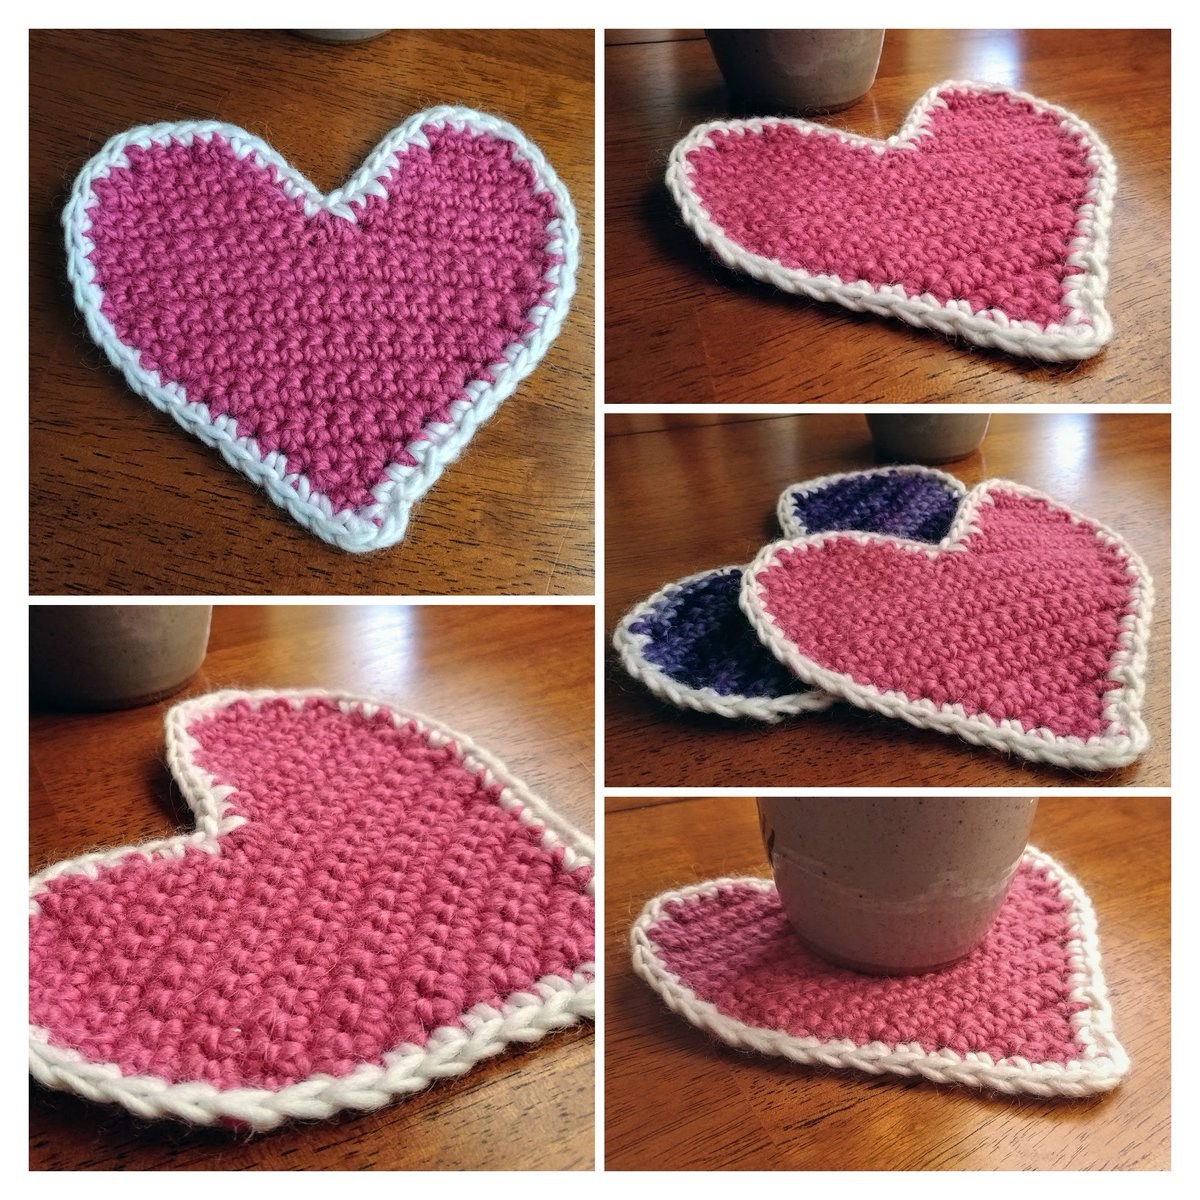 Appypollyollygees On Twitter Pink And White Crochet Heart Shaped